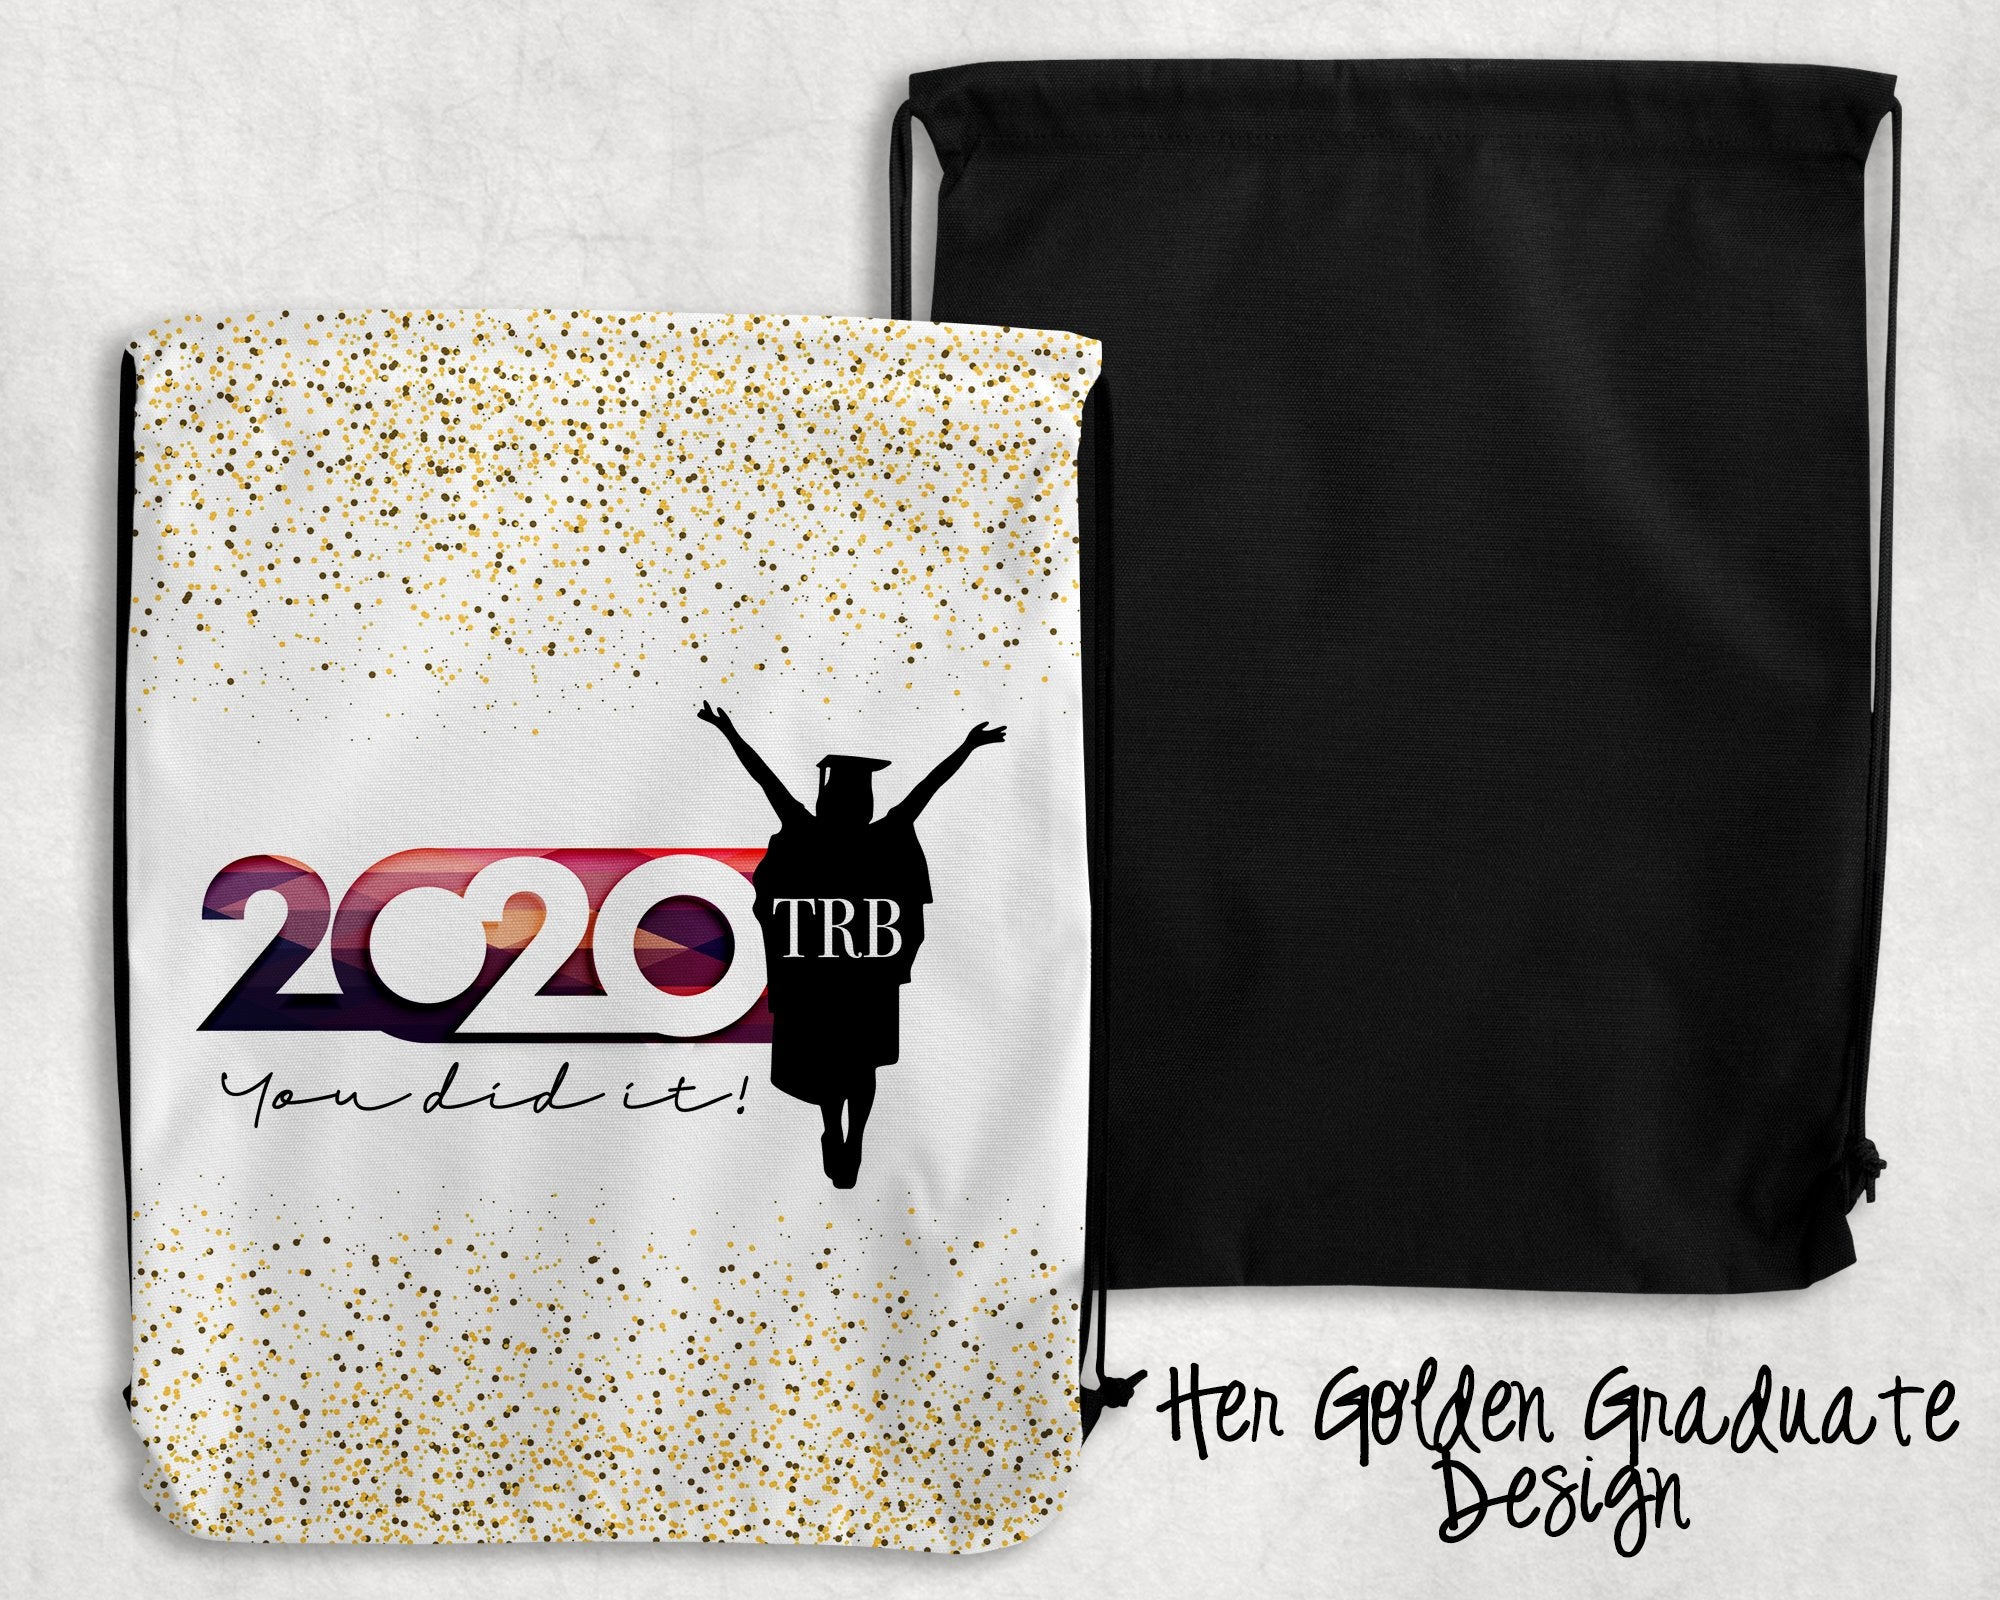 Her Golden Graduate Personalized Drawstring Bags